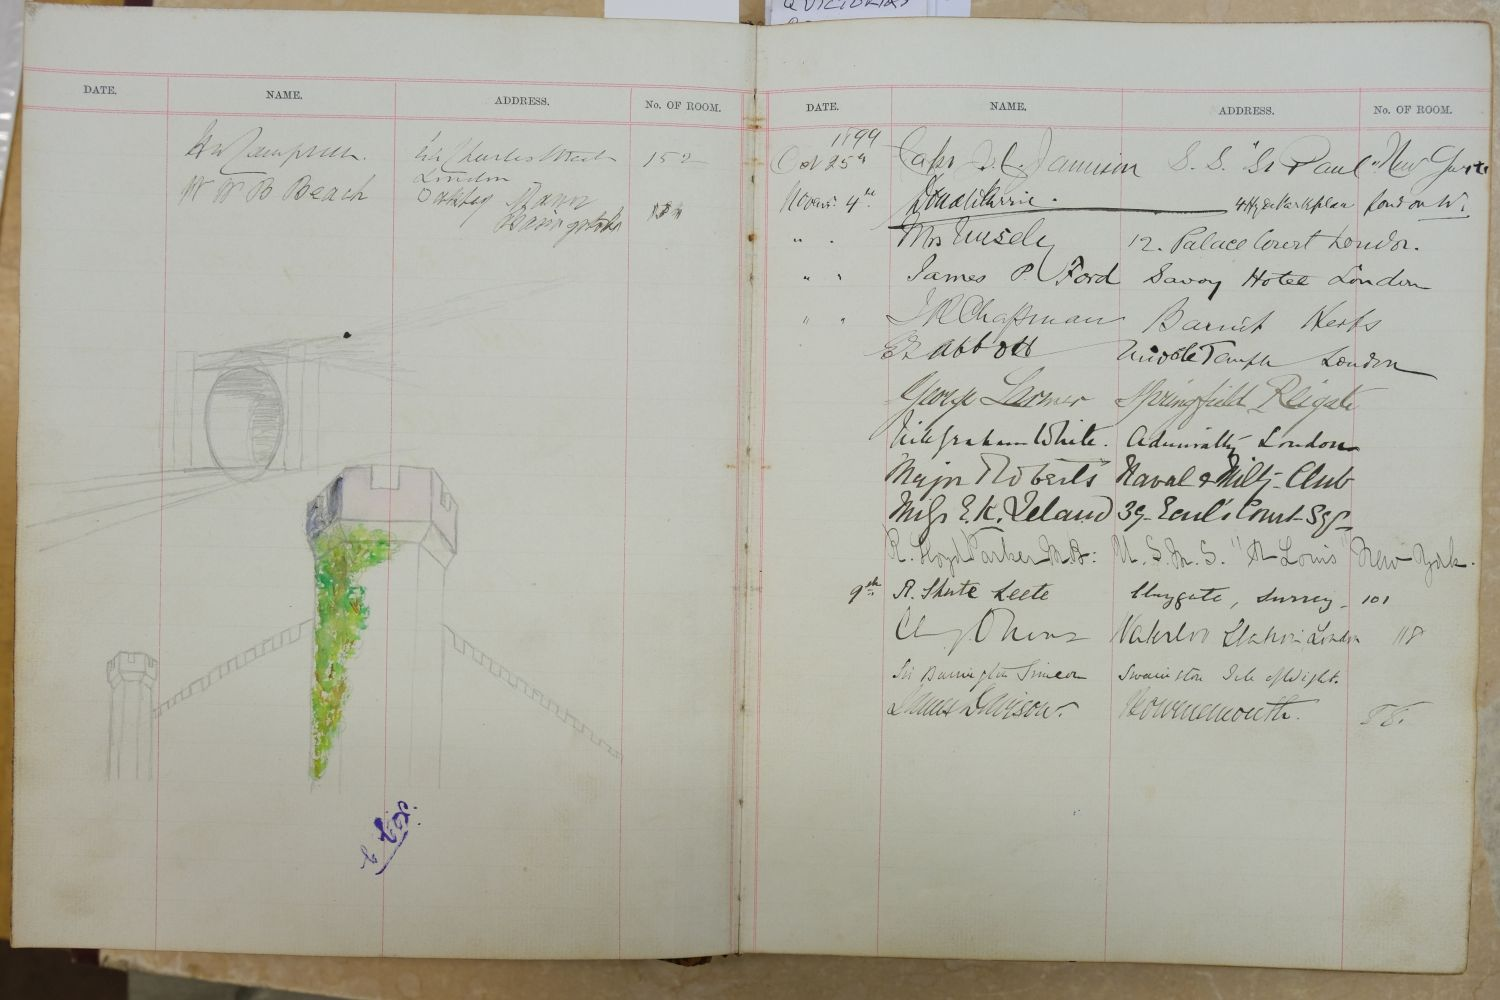 Visitors' Book. South Western Hotel, Southampton. A visitors' book, circa 1899-1912 - Image 2 of 16